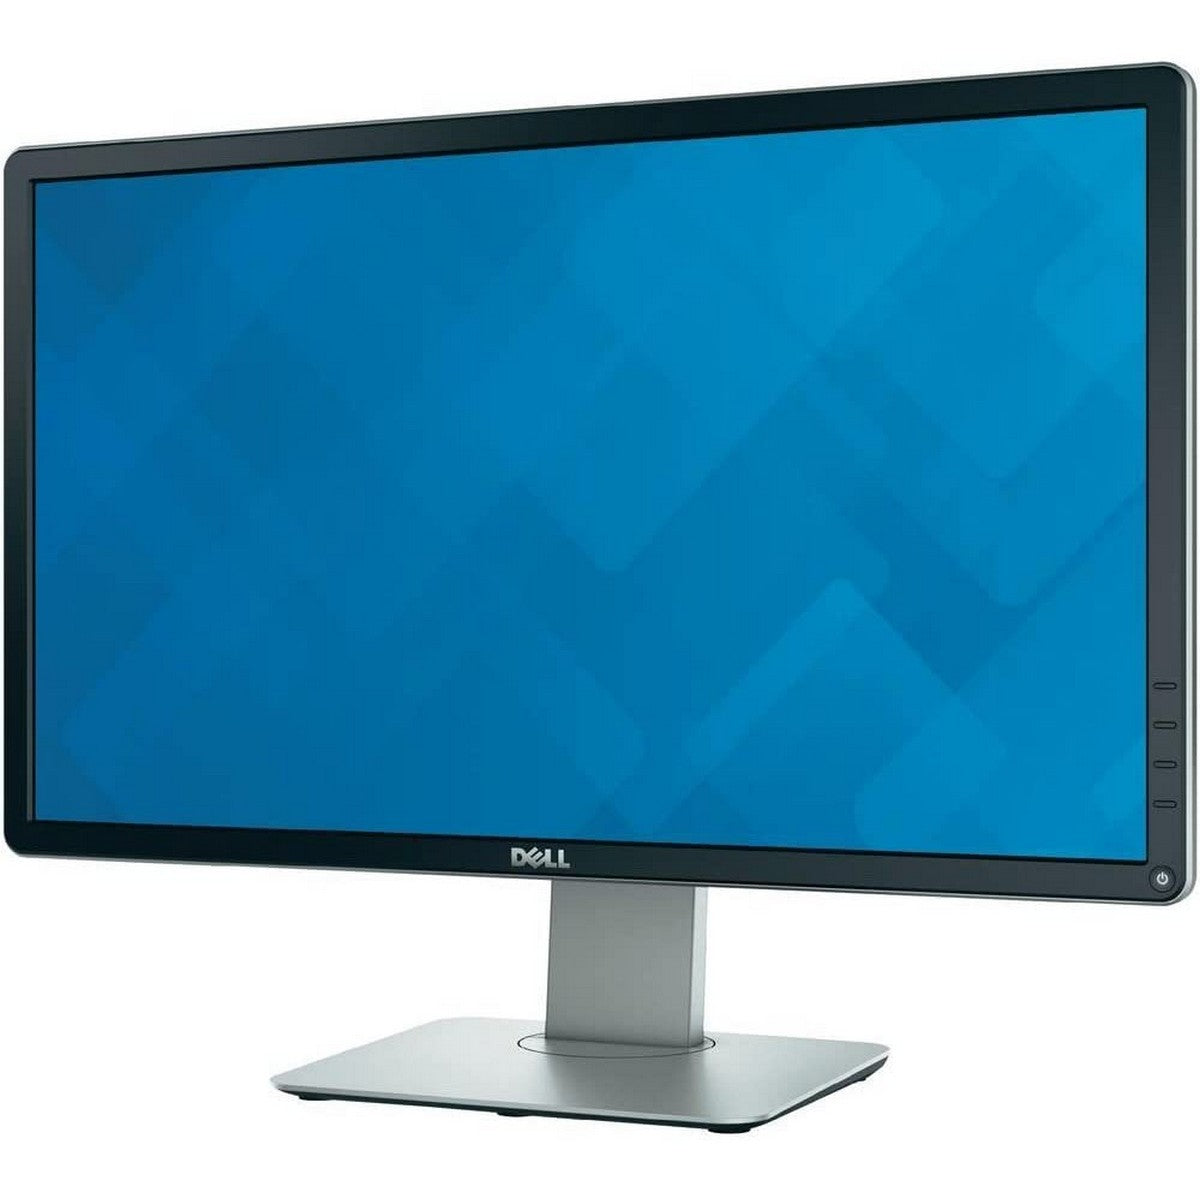 Used Dell P2314Ht 23'' Monitor